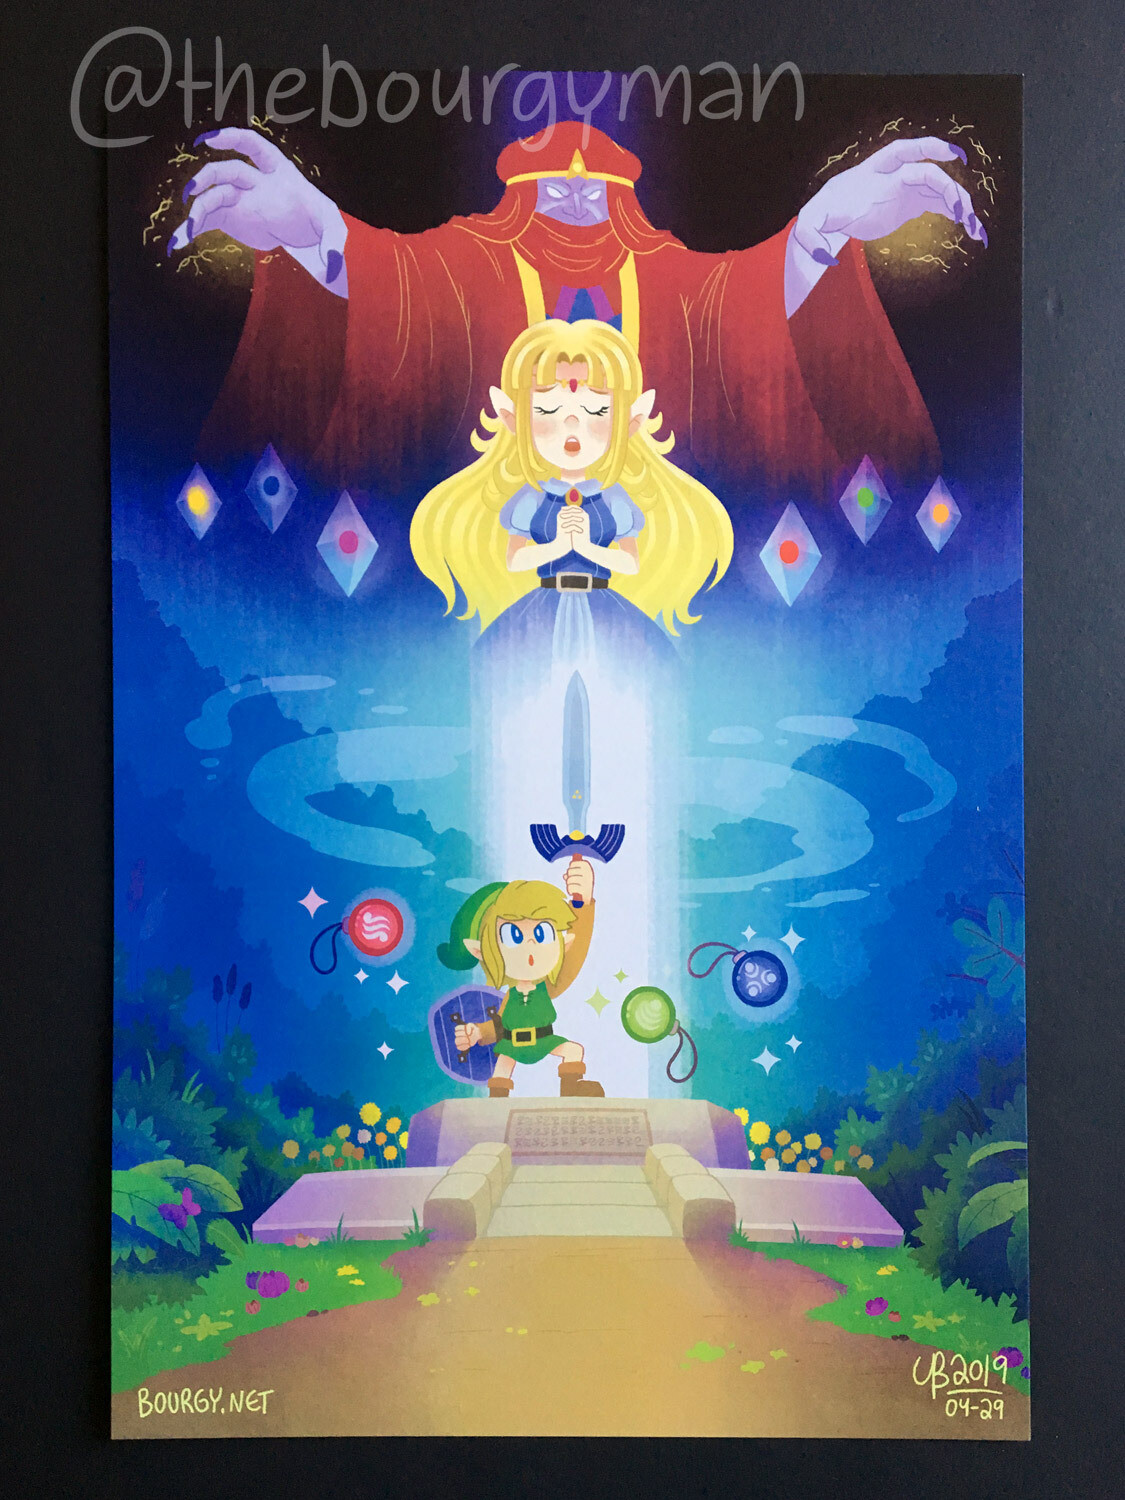 A Link To The Past (Legend of Zelda) poster/affiche